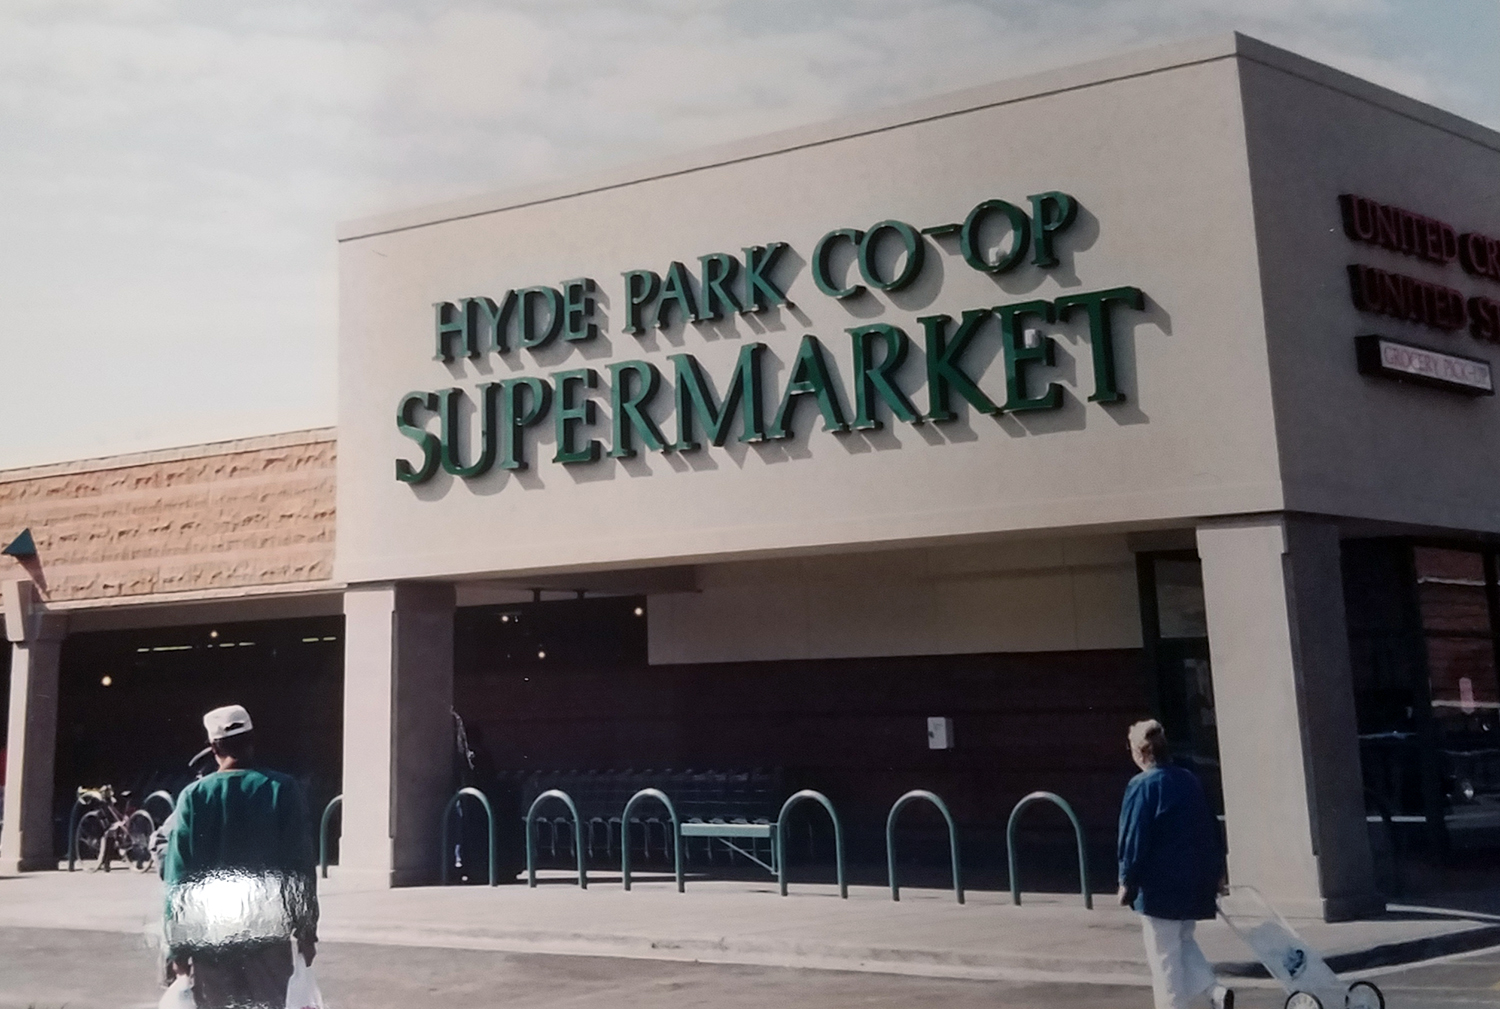 The Hyde Park Co-Op, Chicago's longest-running cooperative grocery store, stayed in business for 75 years. (Courtesy Special Collections Research Center, University of Chicago Library)